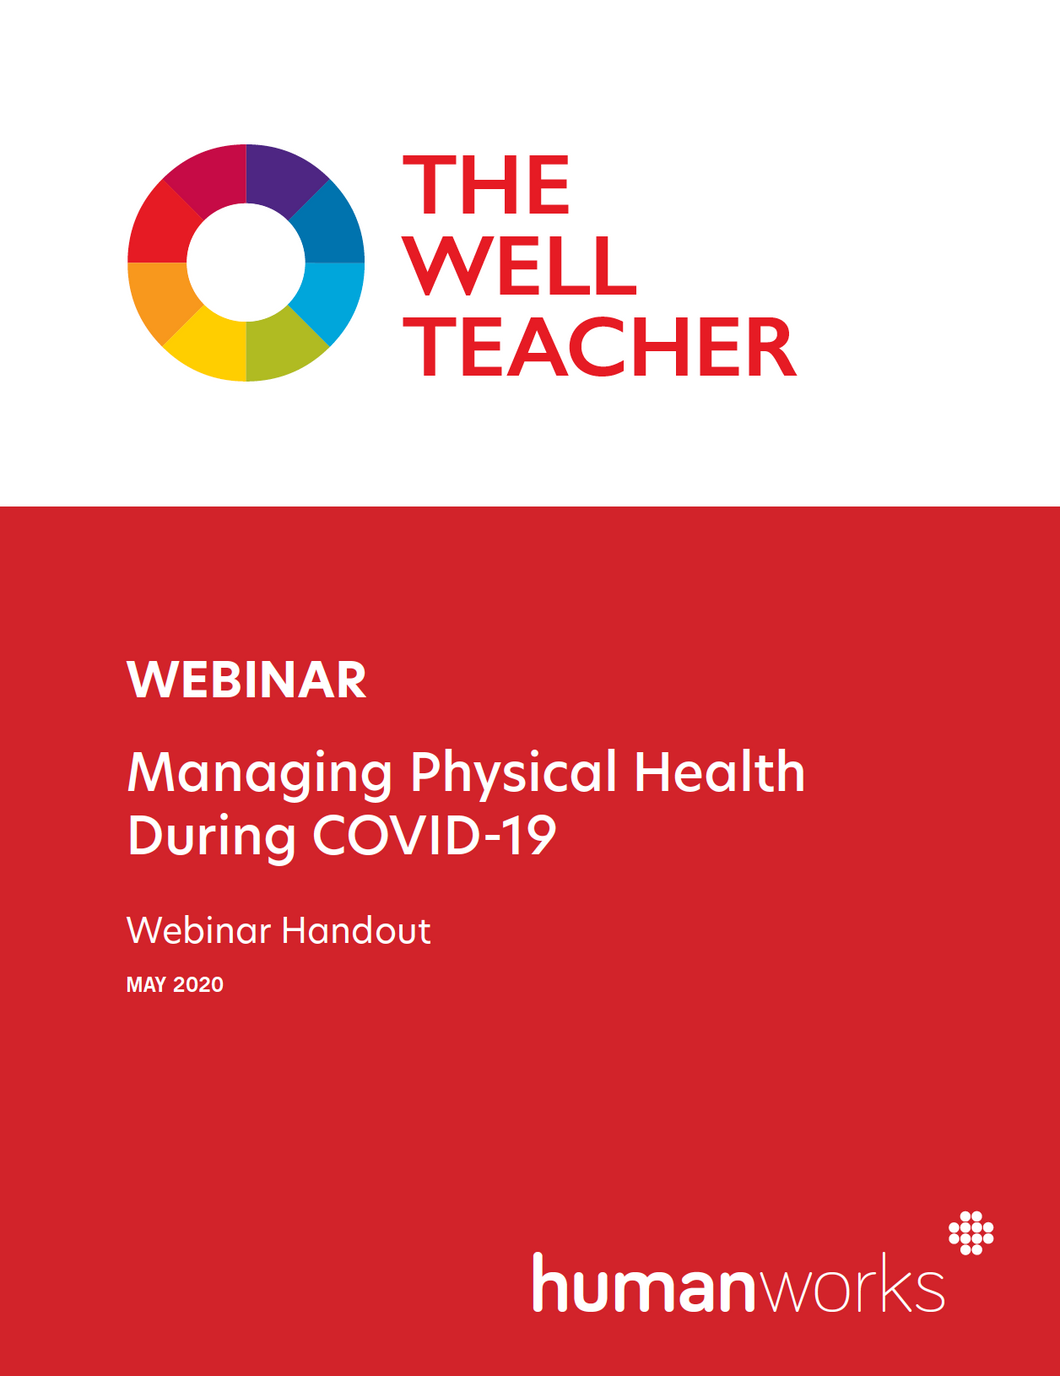 The Well Teacher Webinar Managing Physical Health During COVID-19 handout title page